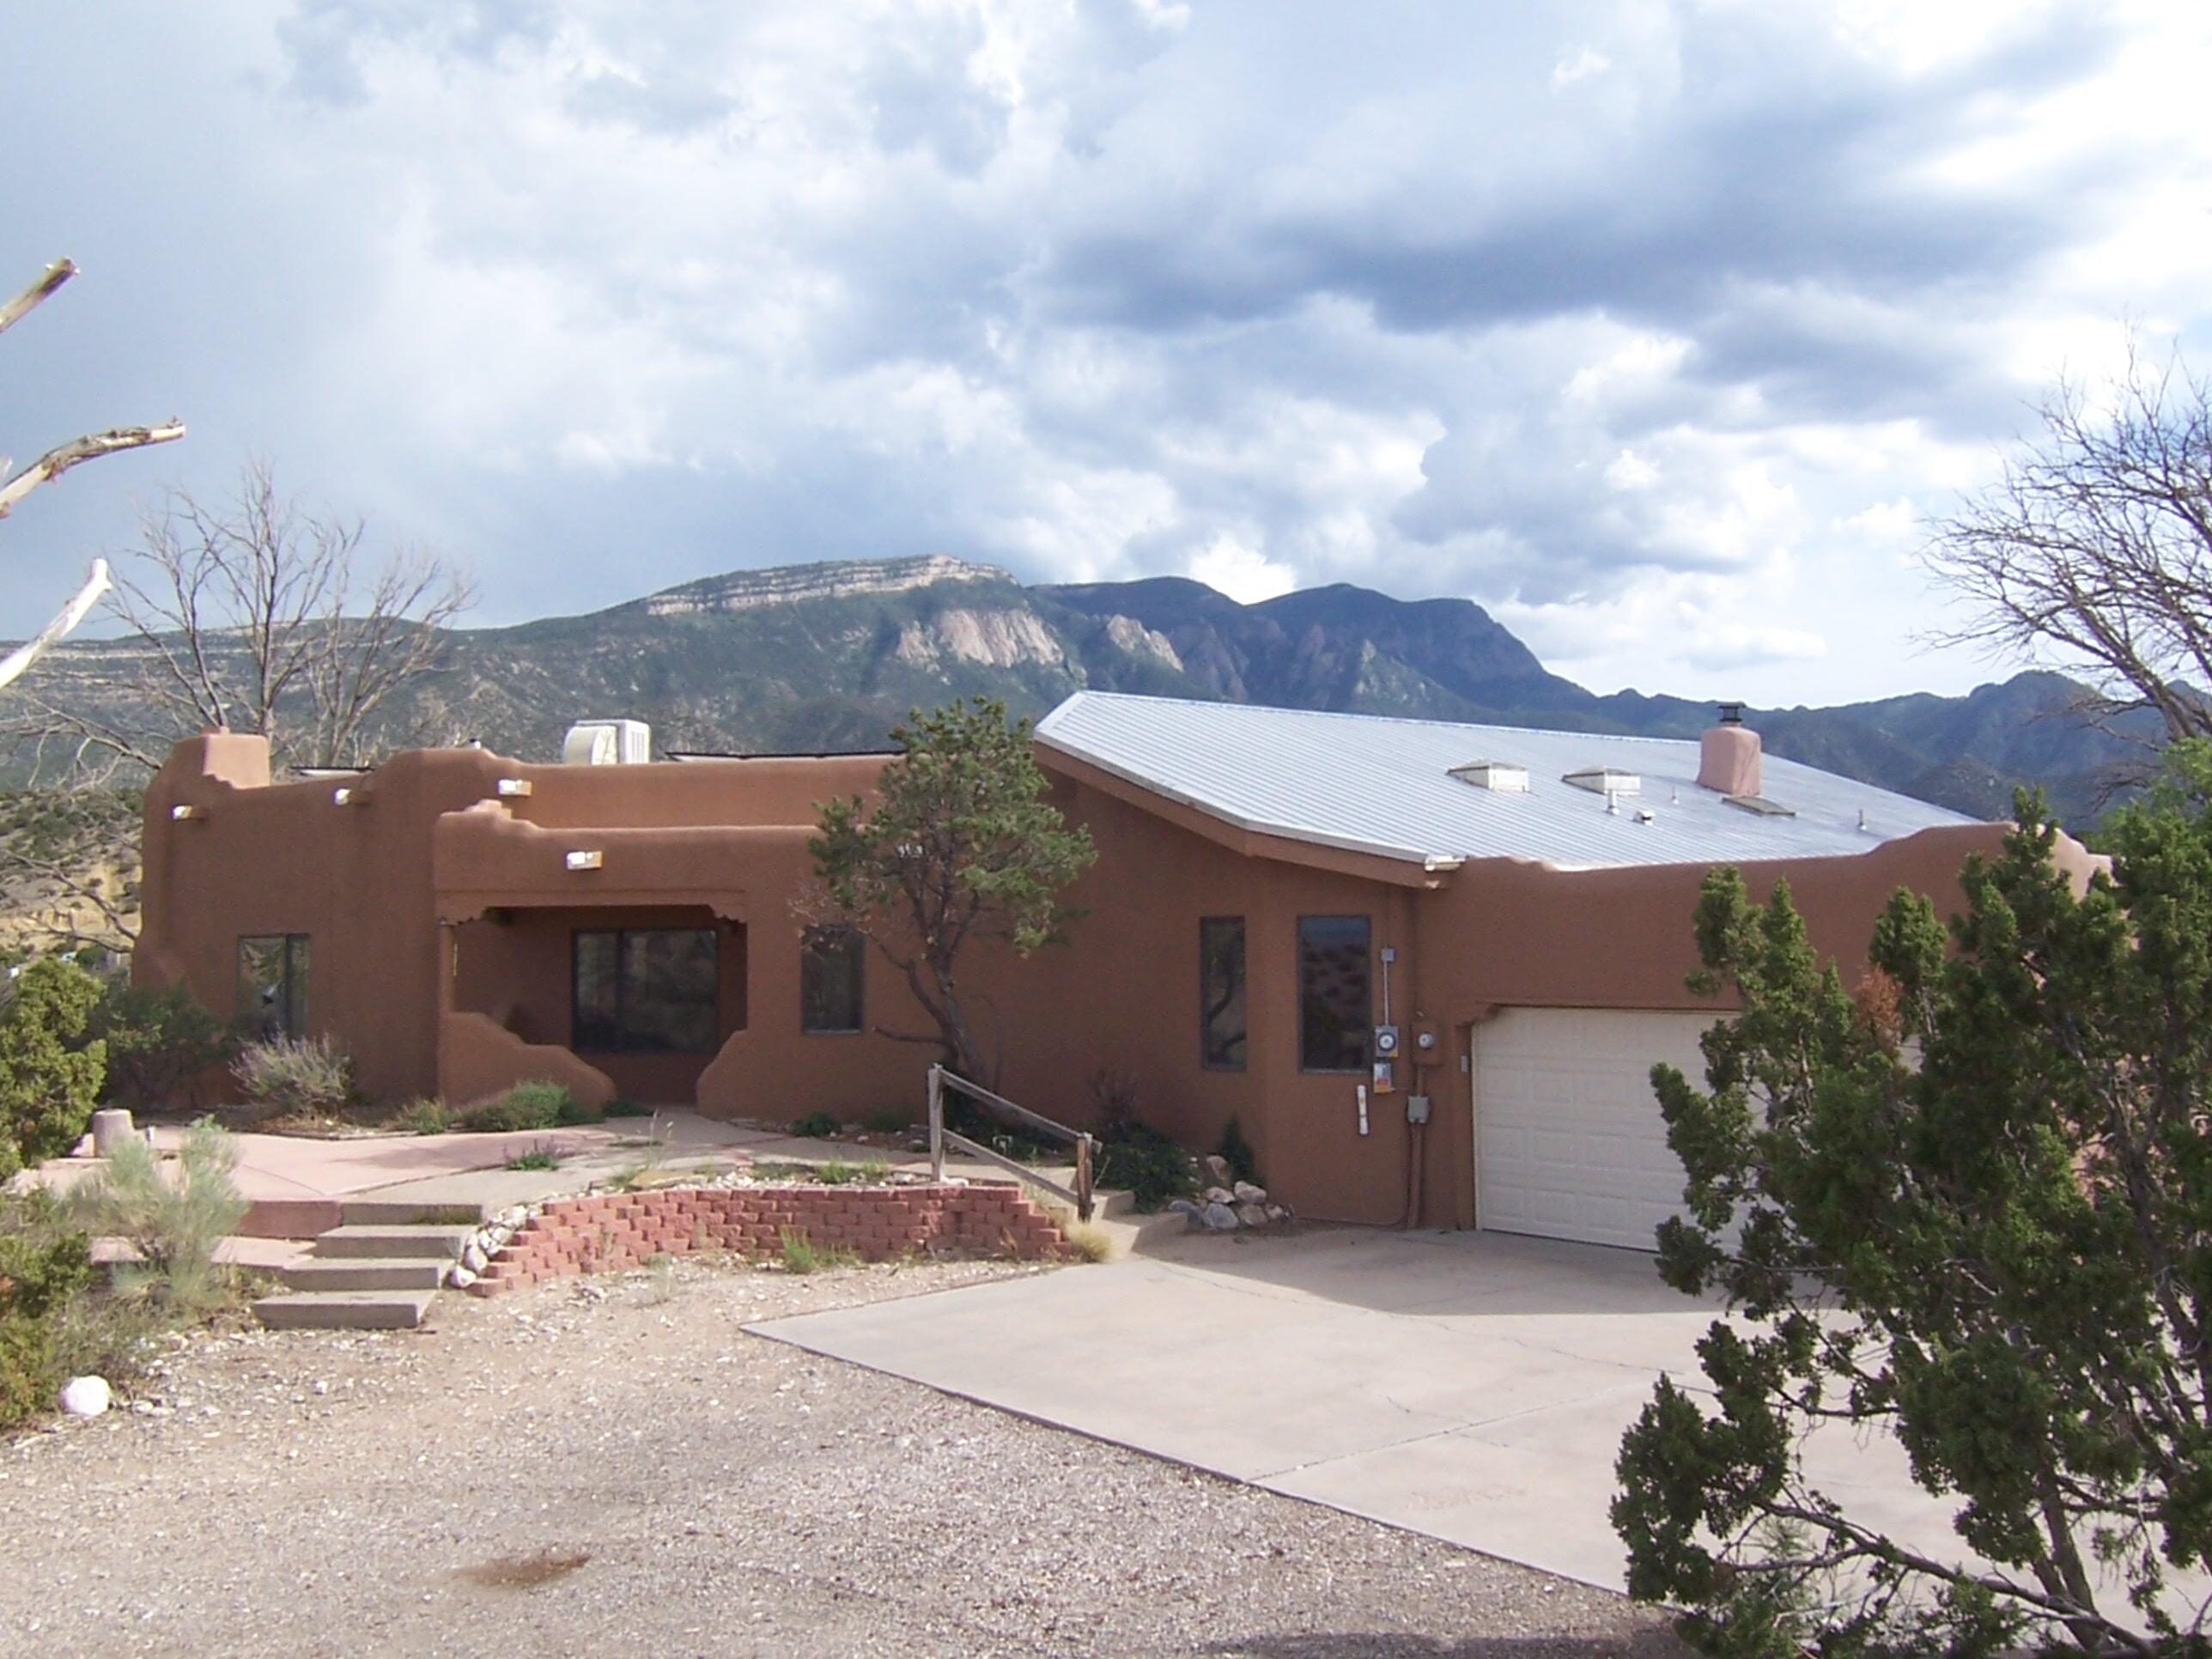 SOUTHWESTERN STYLE ON 2 ACRES! $440,000. Ridge top custom 3 bedroom home with dramatic views of the mesas and Sandias! Lots of exposed adobe and beam and wood ceilings, 2 kiva fireplaces, brick floors, open floor plan, heated sunroom, skylights and wood windows. New roof is just 2 years new! 2 car finished garage. 2 acre lot which includes over 150 feet of ridge land to the south of the house... Solar panels (owned). Views from every window. Private covered porch off master bedroom and spacious rear patio! Kiva fireplaces in great room and master bedroom. 2 full baths, walk-in closets, clerestory windows and wonderful, open kitchen with island. Community water! New septic system! Great sunroom for passive solar heat and growing plants in winter. Less than 5 miles from I-25.